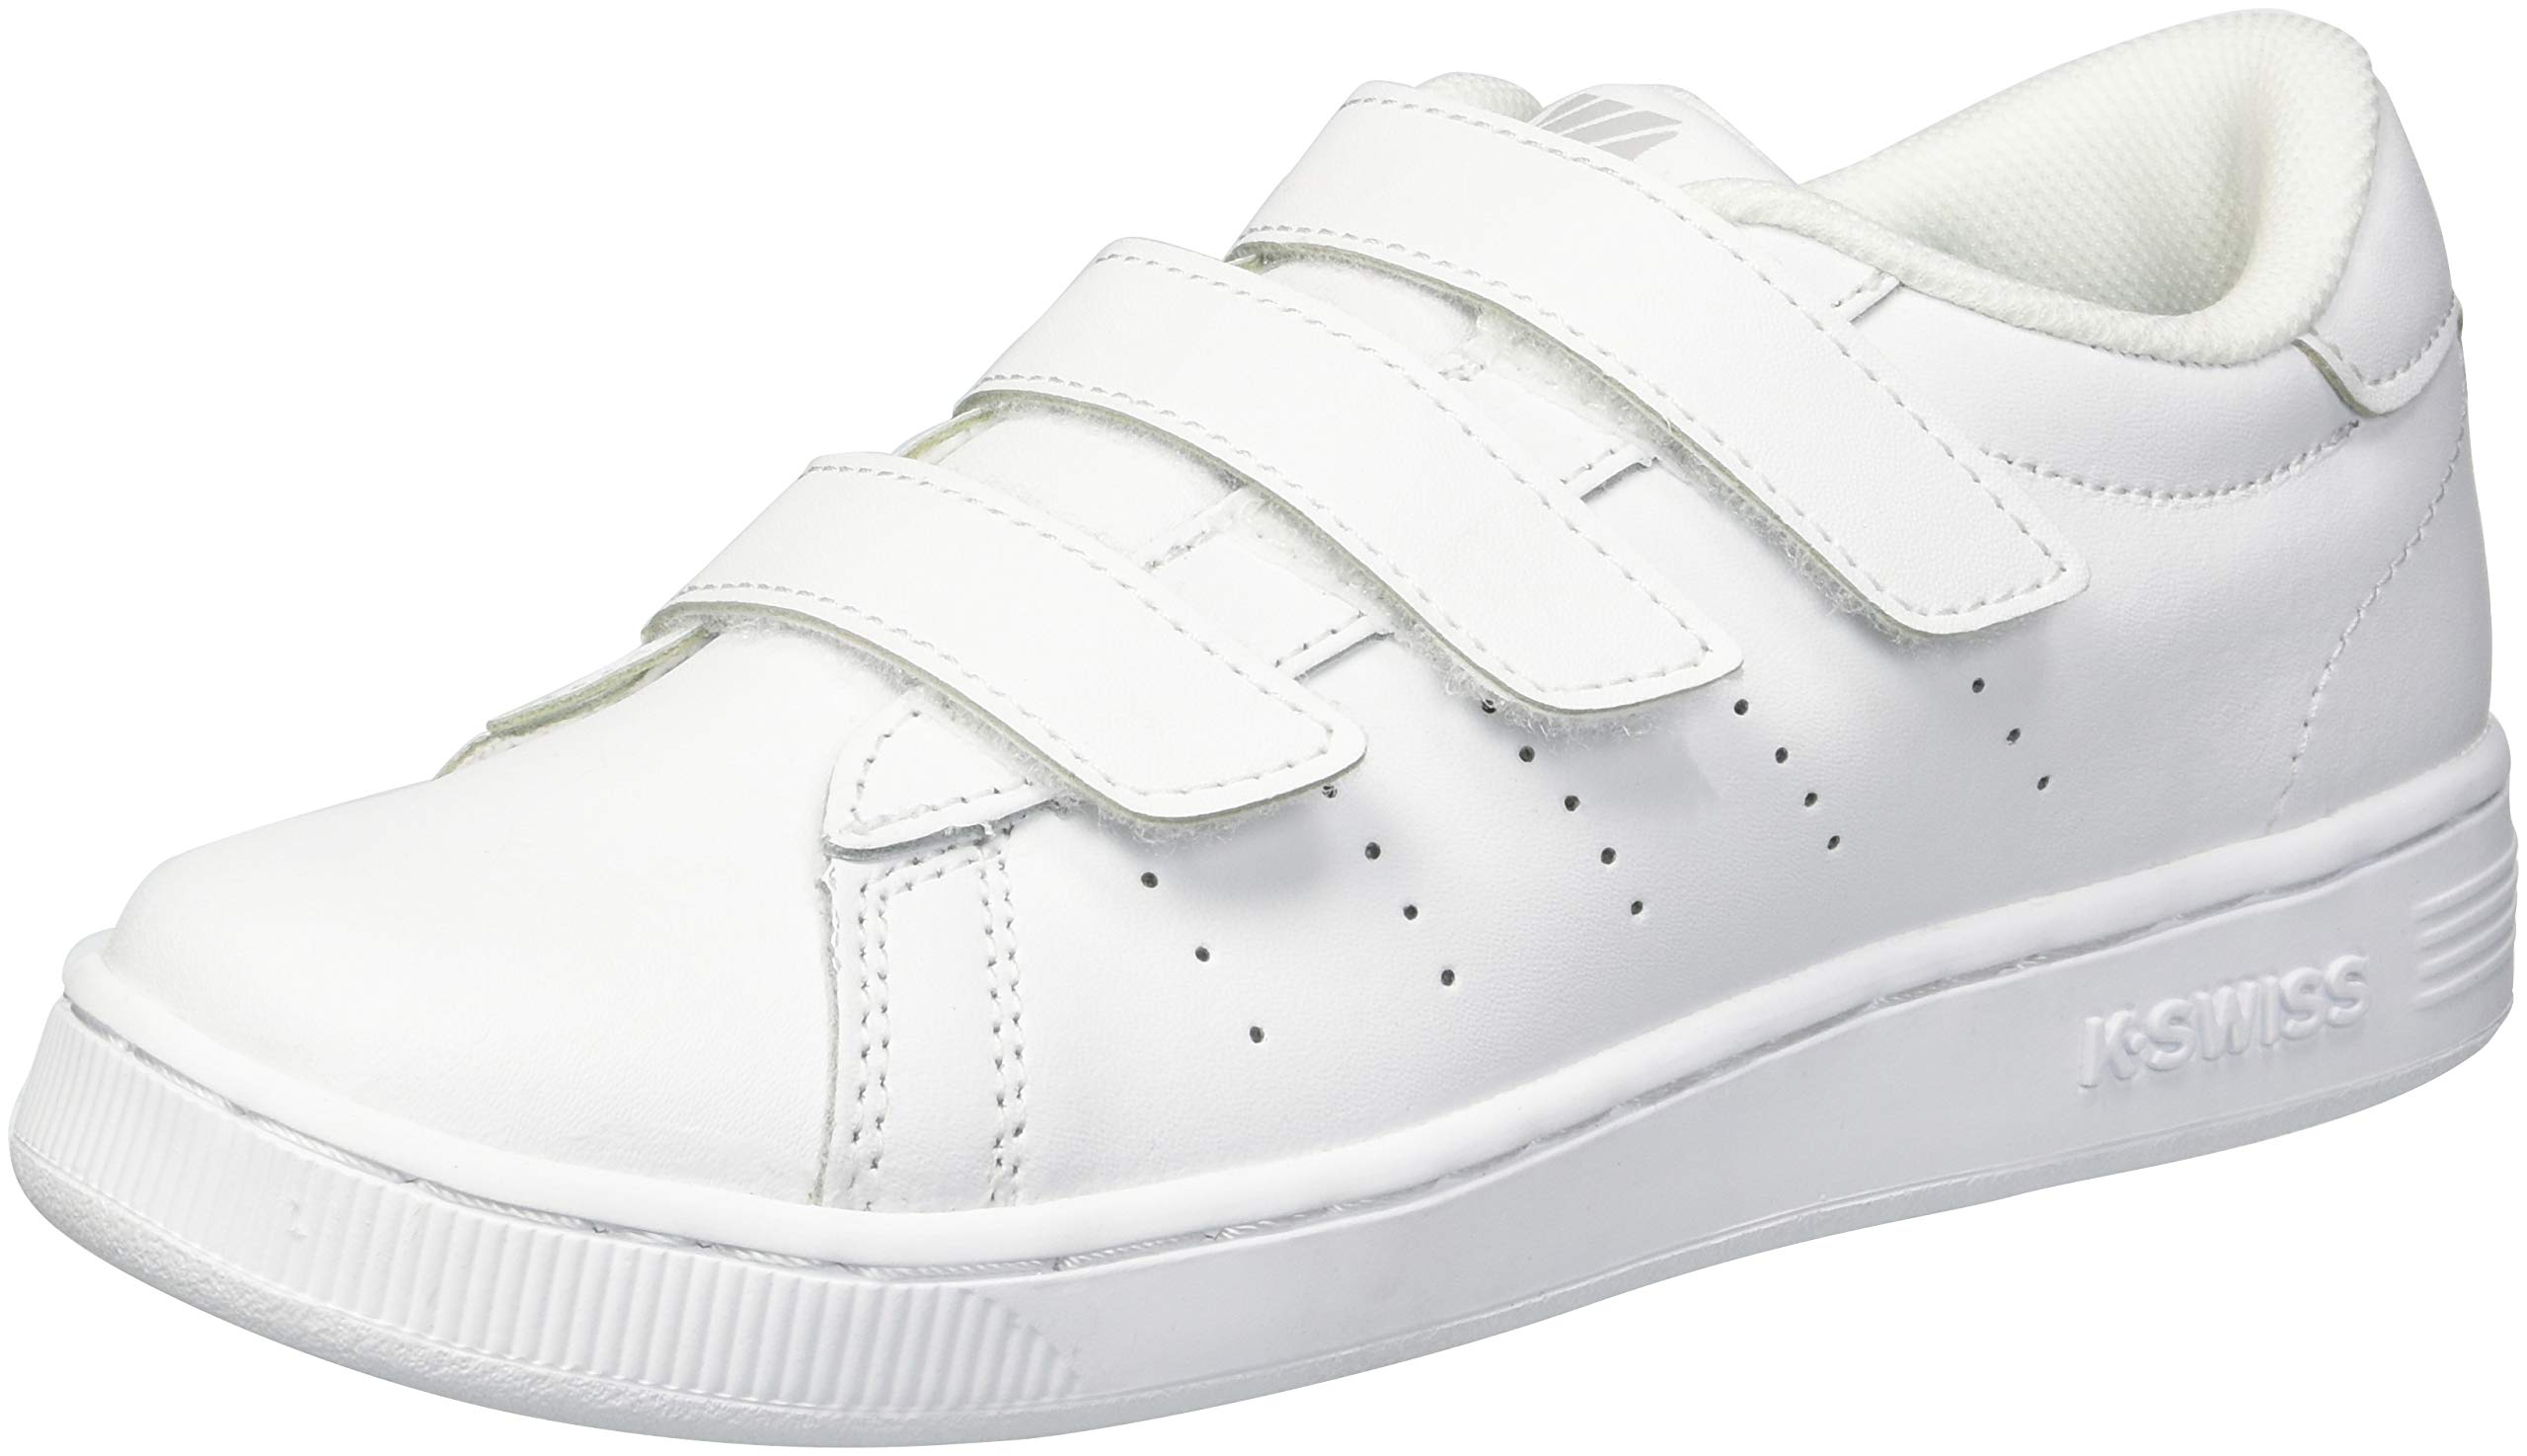 K-Swiss Unisex Clean Court 3-Strap Sneaker, White/Gull Gray, 12.5 M US Little Kid